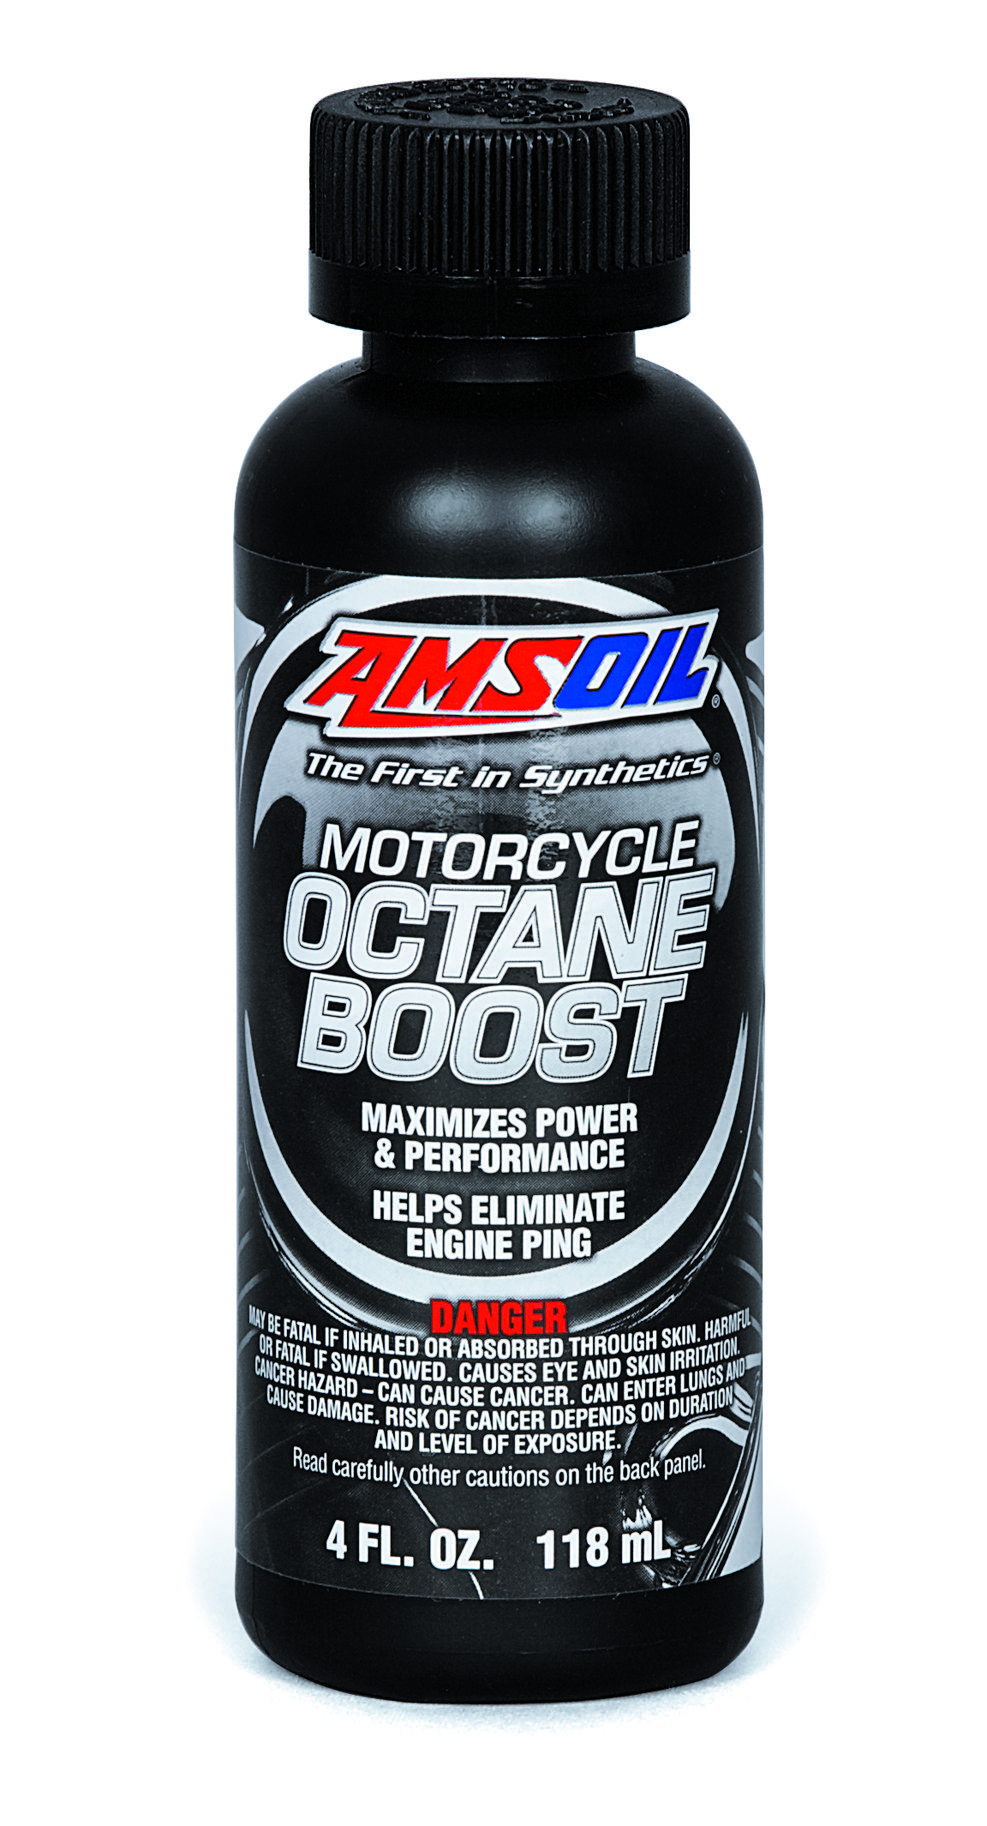 Amsoil Motorcycle Octane Boost. Increases octane for power